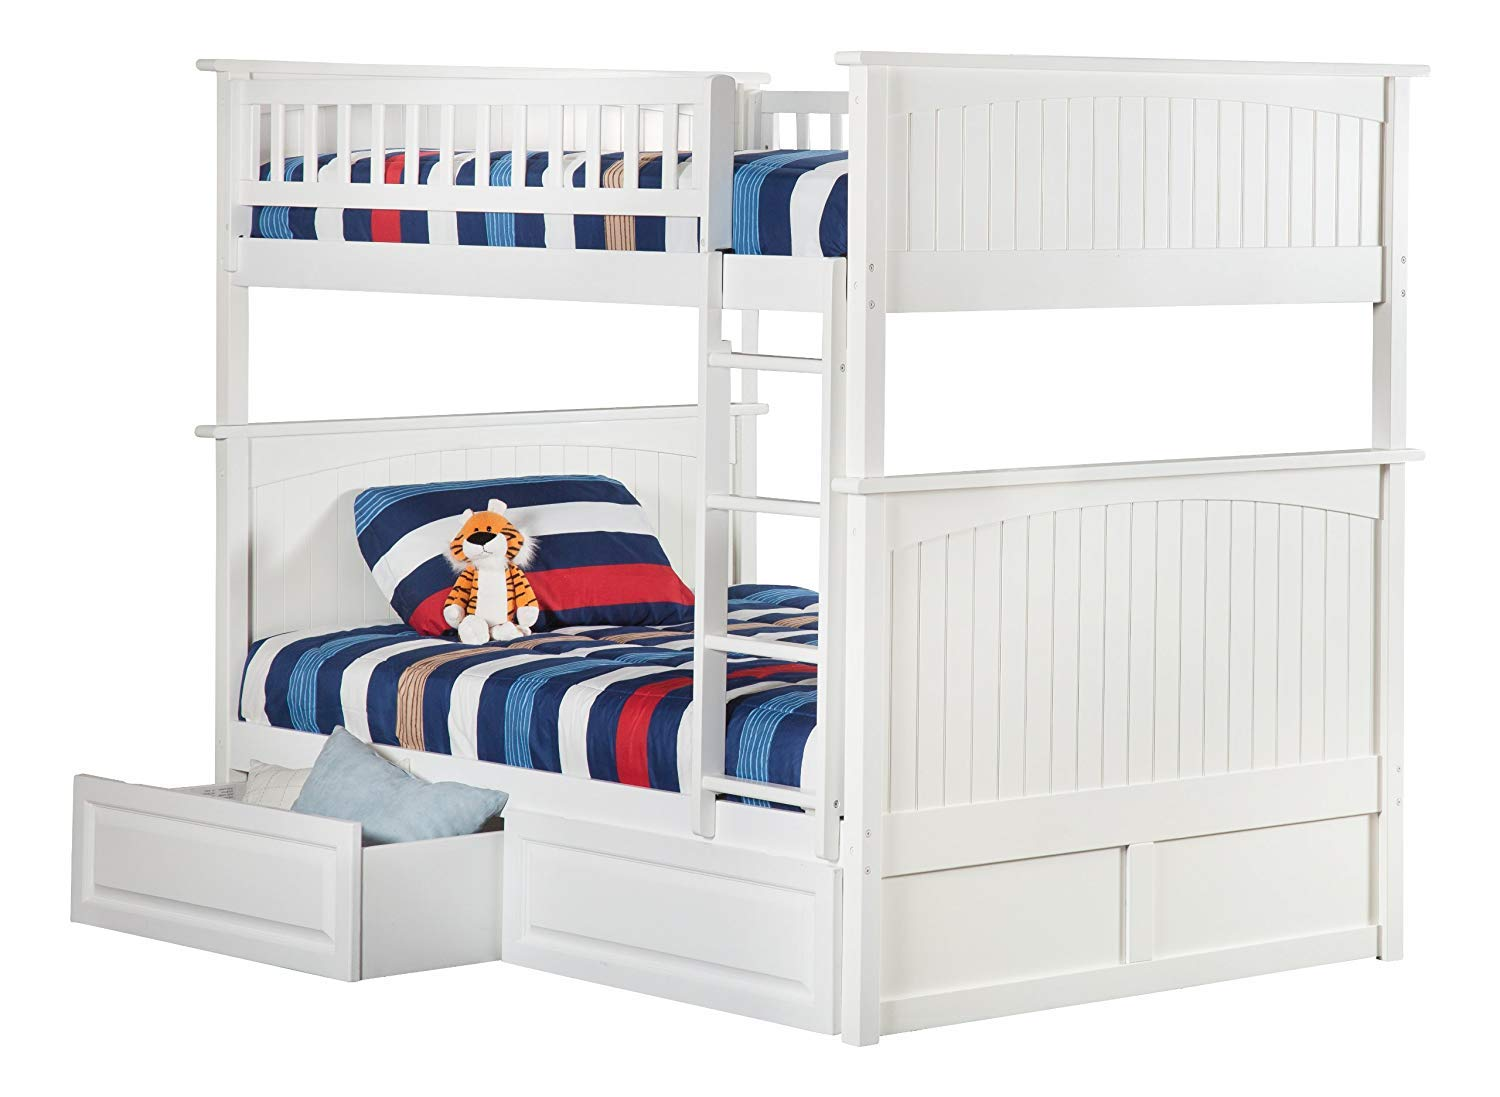 Atlantic Furniture Nantucket Bunk Bed with 2 Raised Panel Bed Drawers, Full Full, White